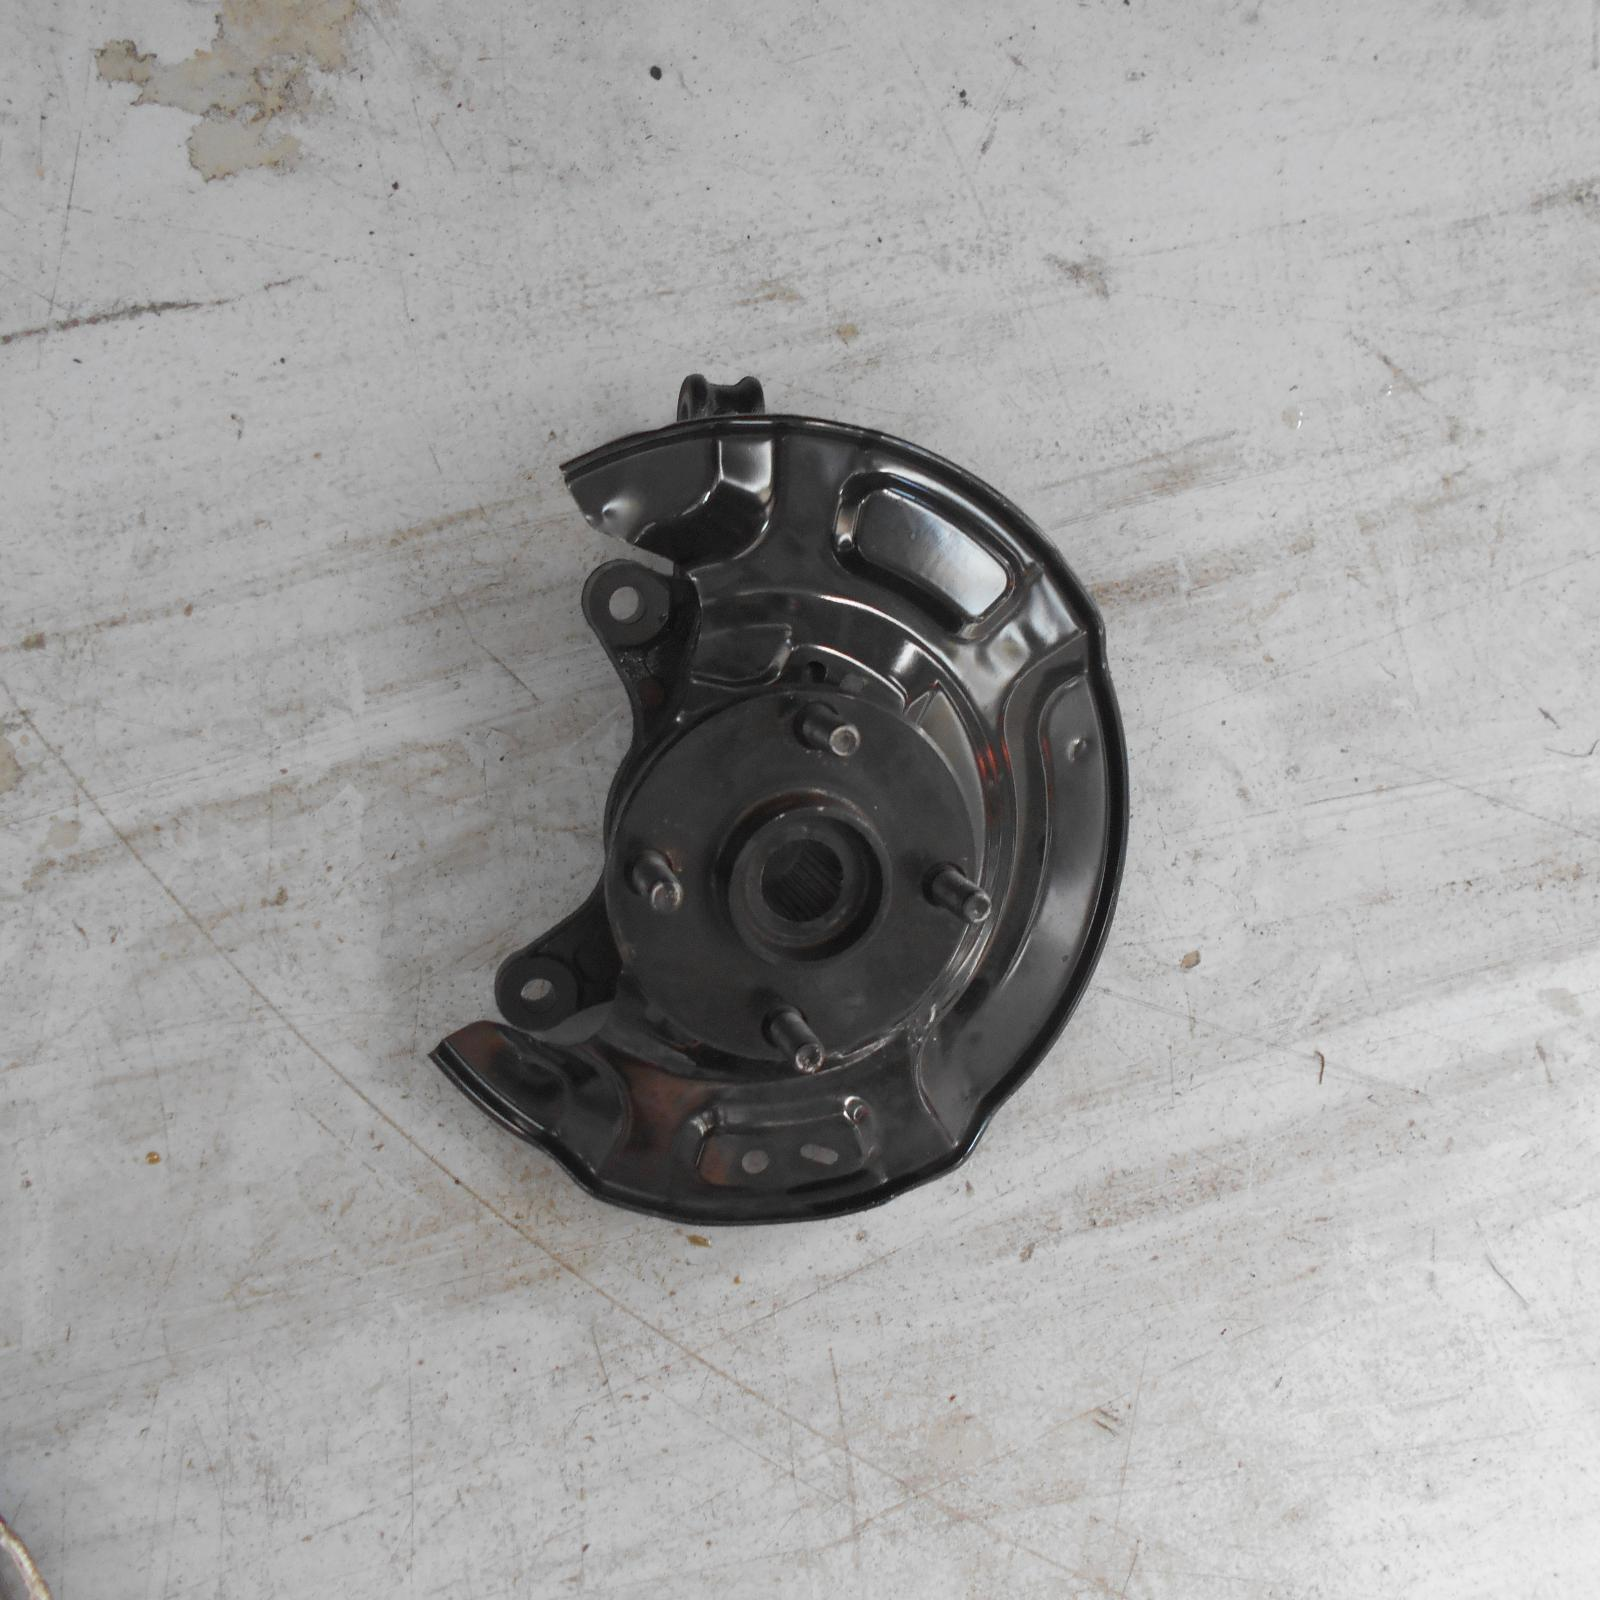 TOYOTA PRIUS, Left Front Hub Assembly, NHP10R, PRIUS C, 03/12-